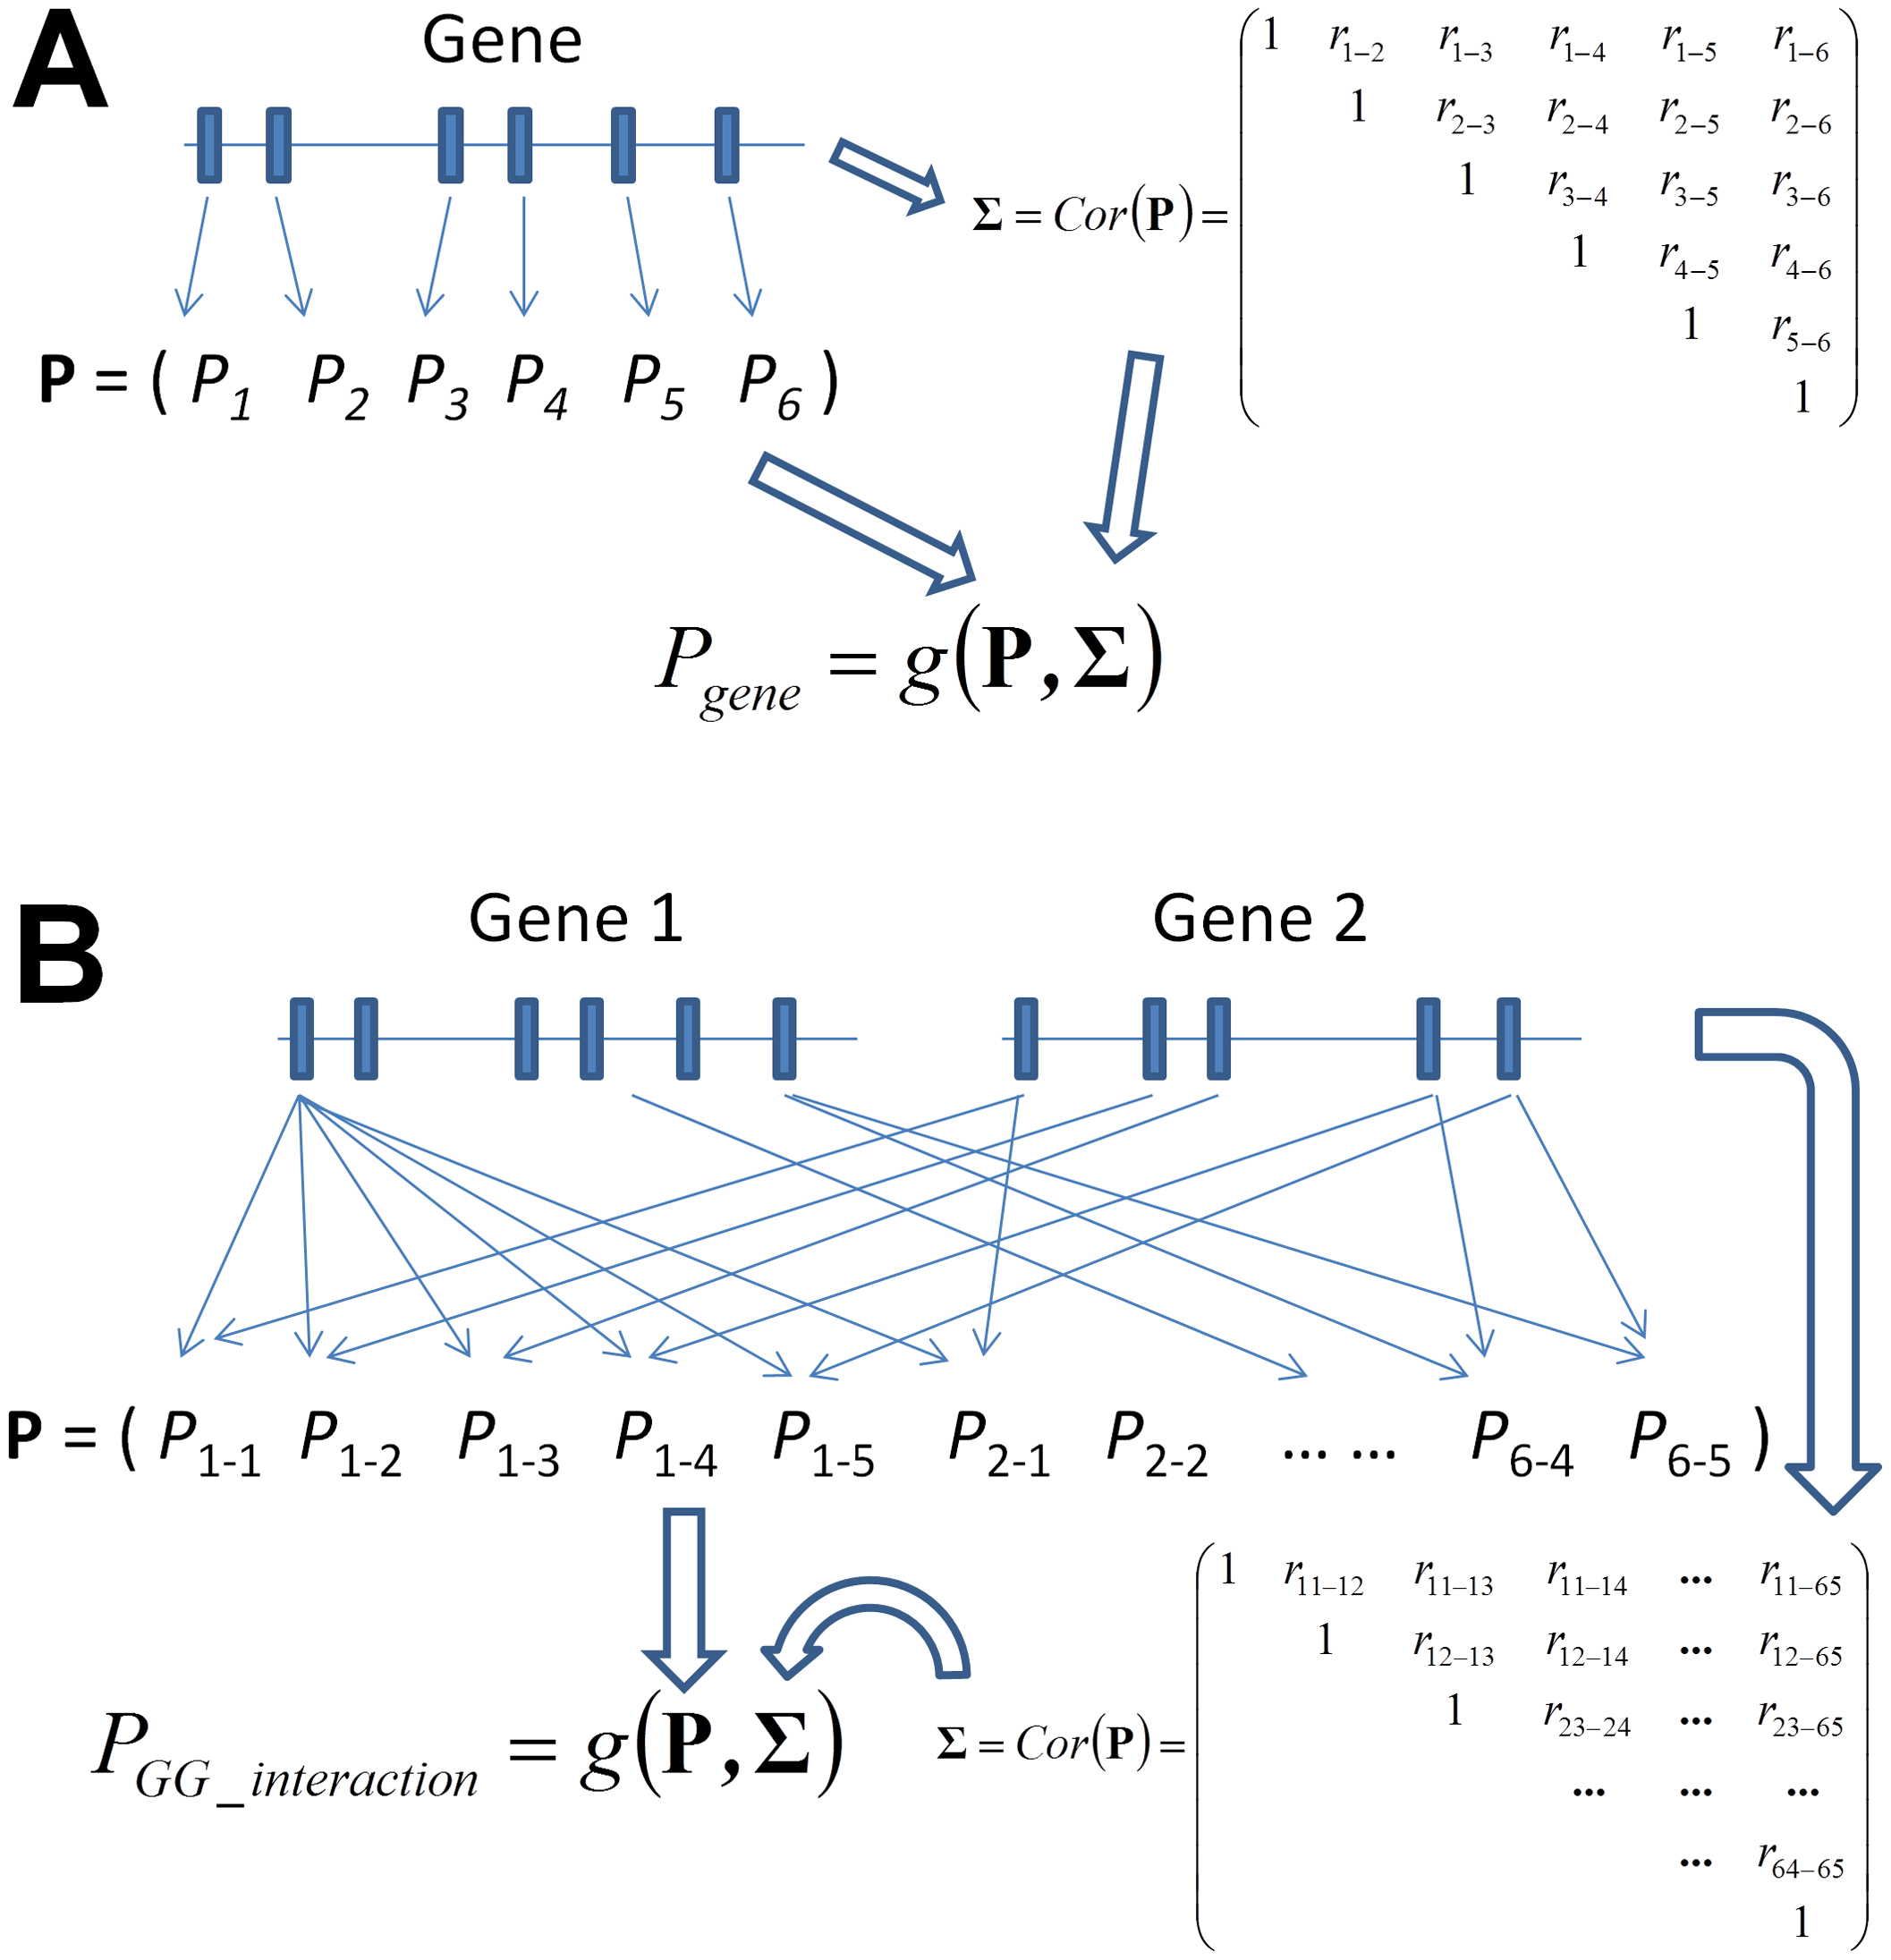 Graphical illustration of the framework of gene-based single-marker test and its generalization to a gene-based gene–gene interaction (GGG) test as proposed in this paper.